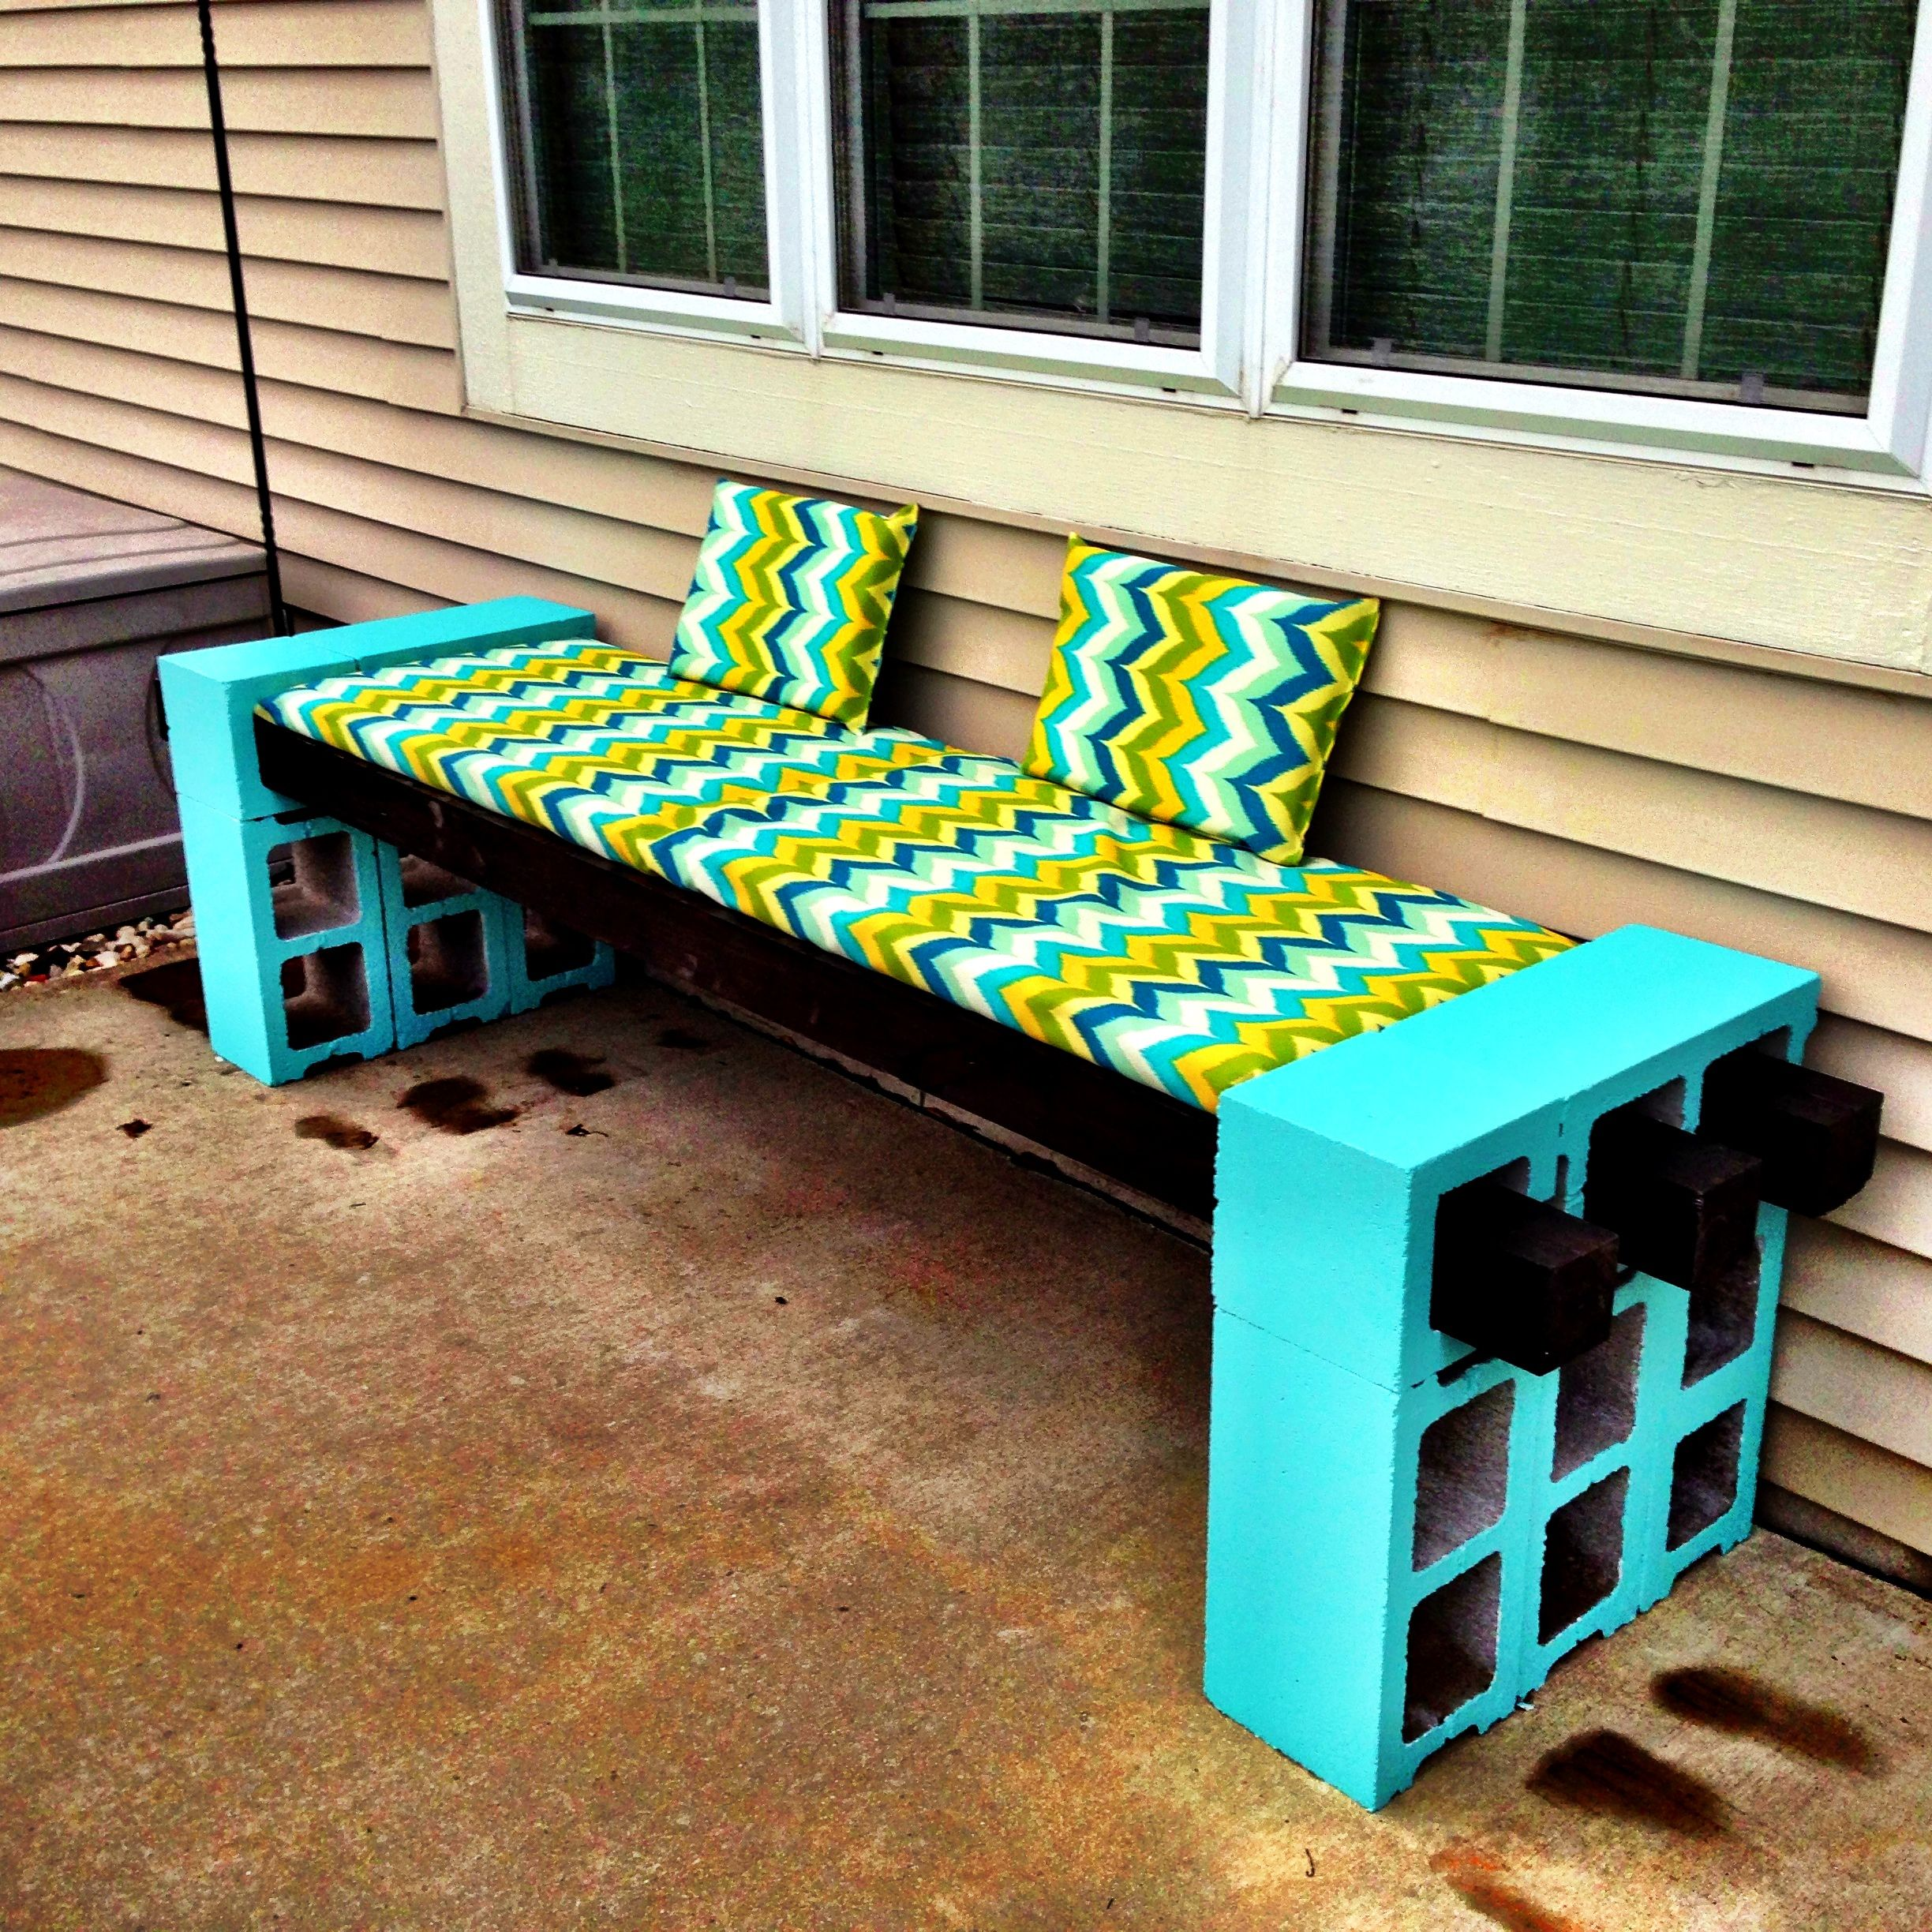 How to Make a Cinder Block Bench | Cinder block bench